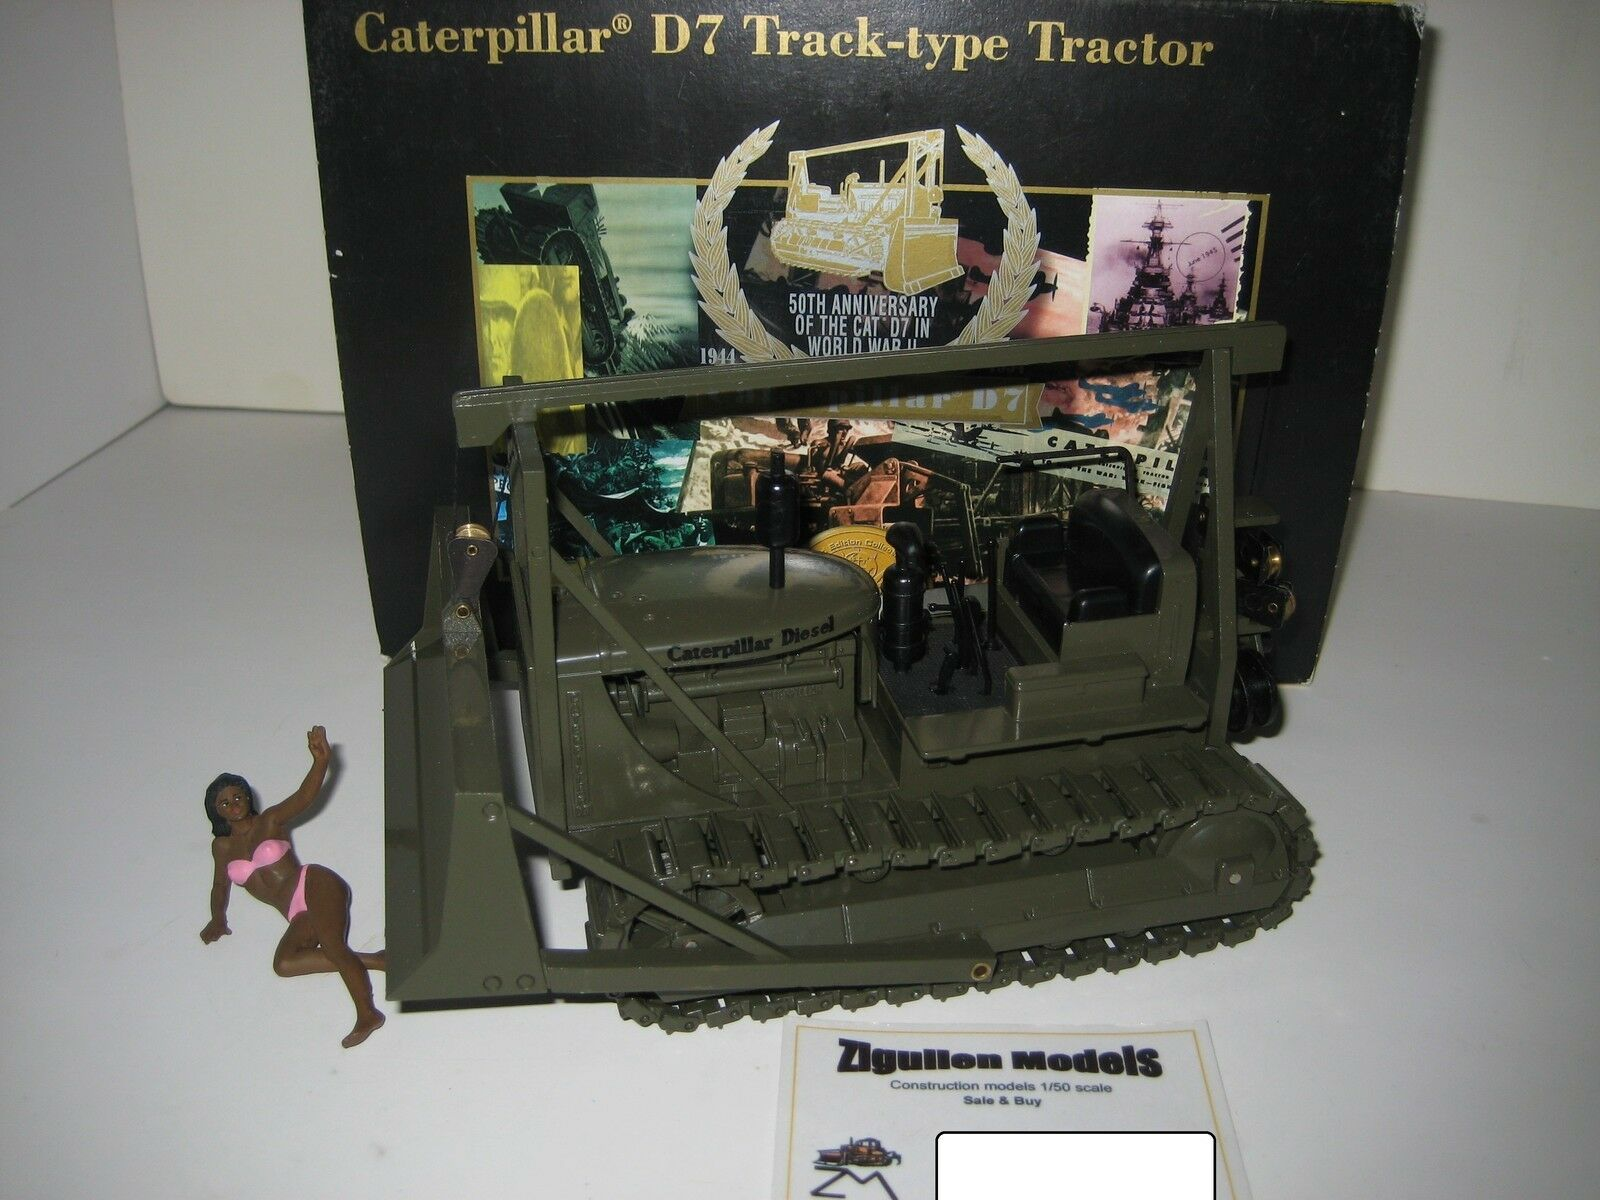 CATERPILLAR D 7 PLANIERRAUPE MILITARY MILITARY MILITARY NZG 1 25 OVP LIMITED 15121a